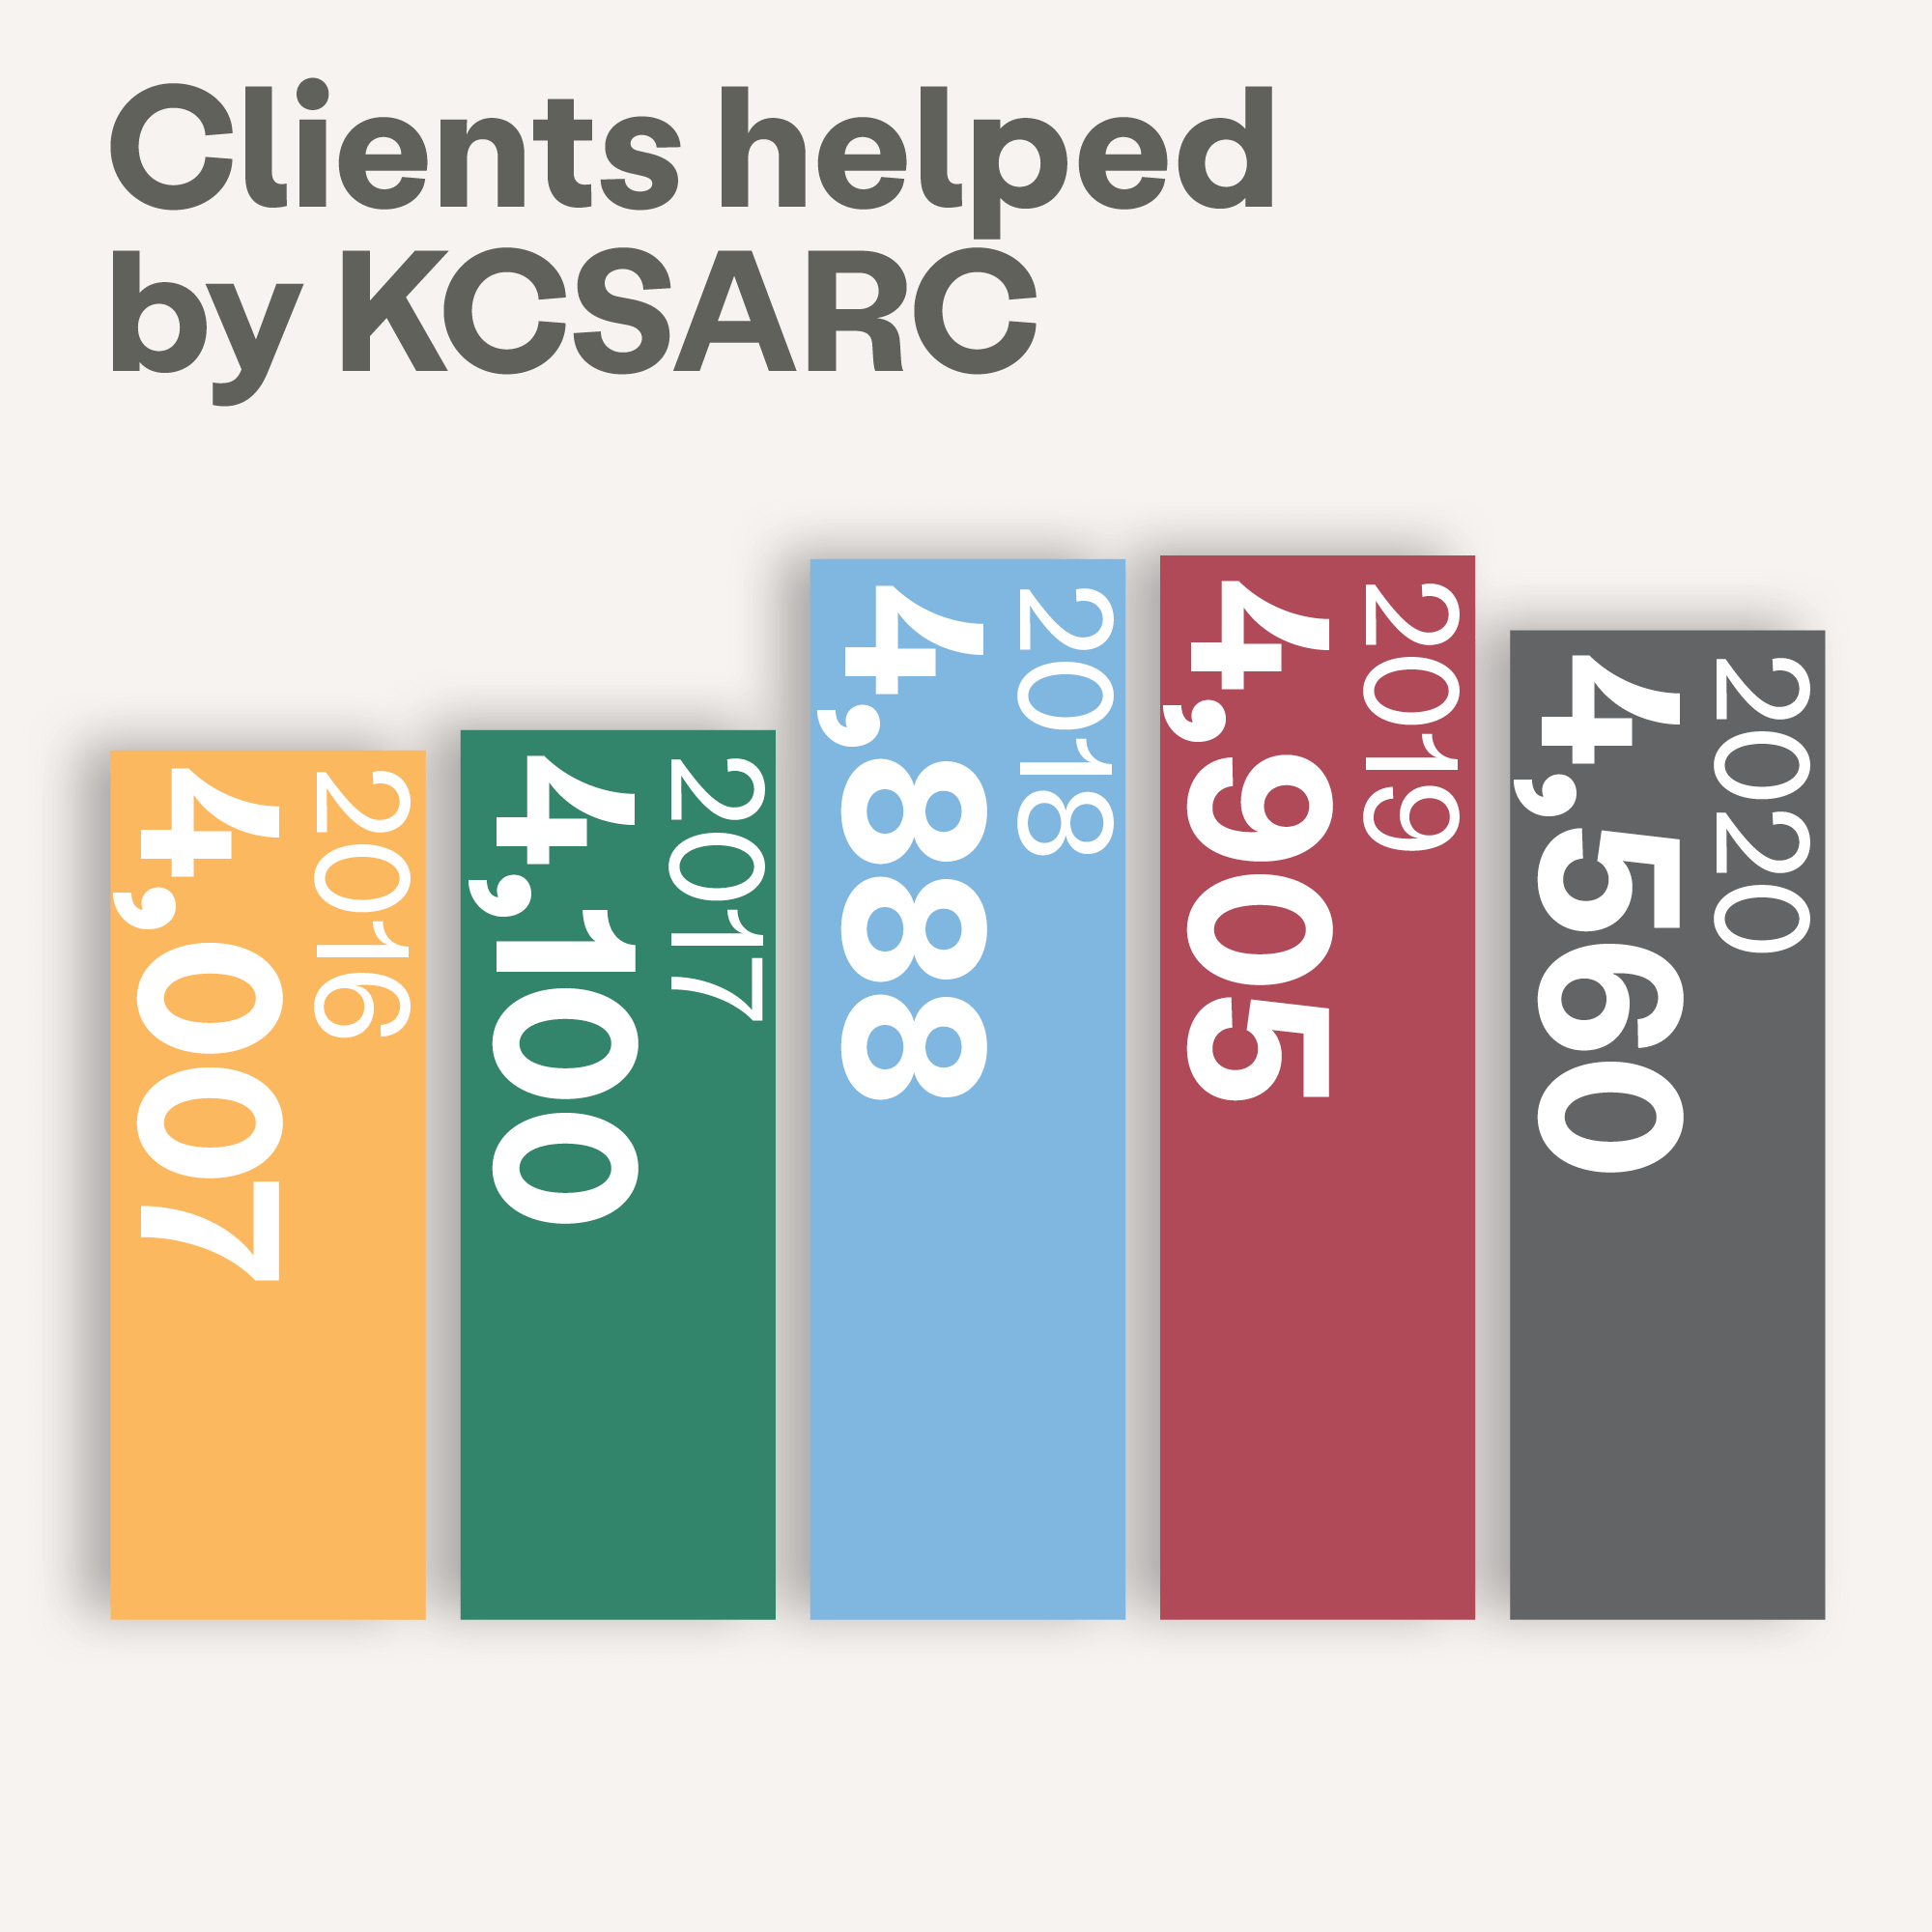 Client service numbers image